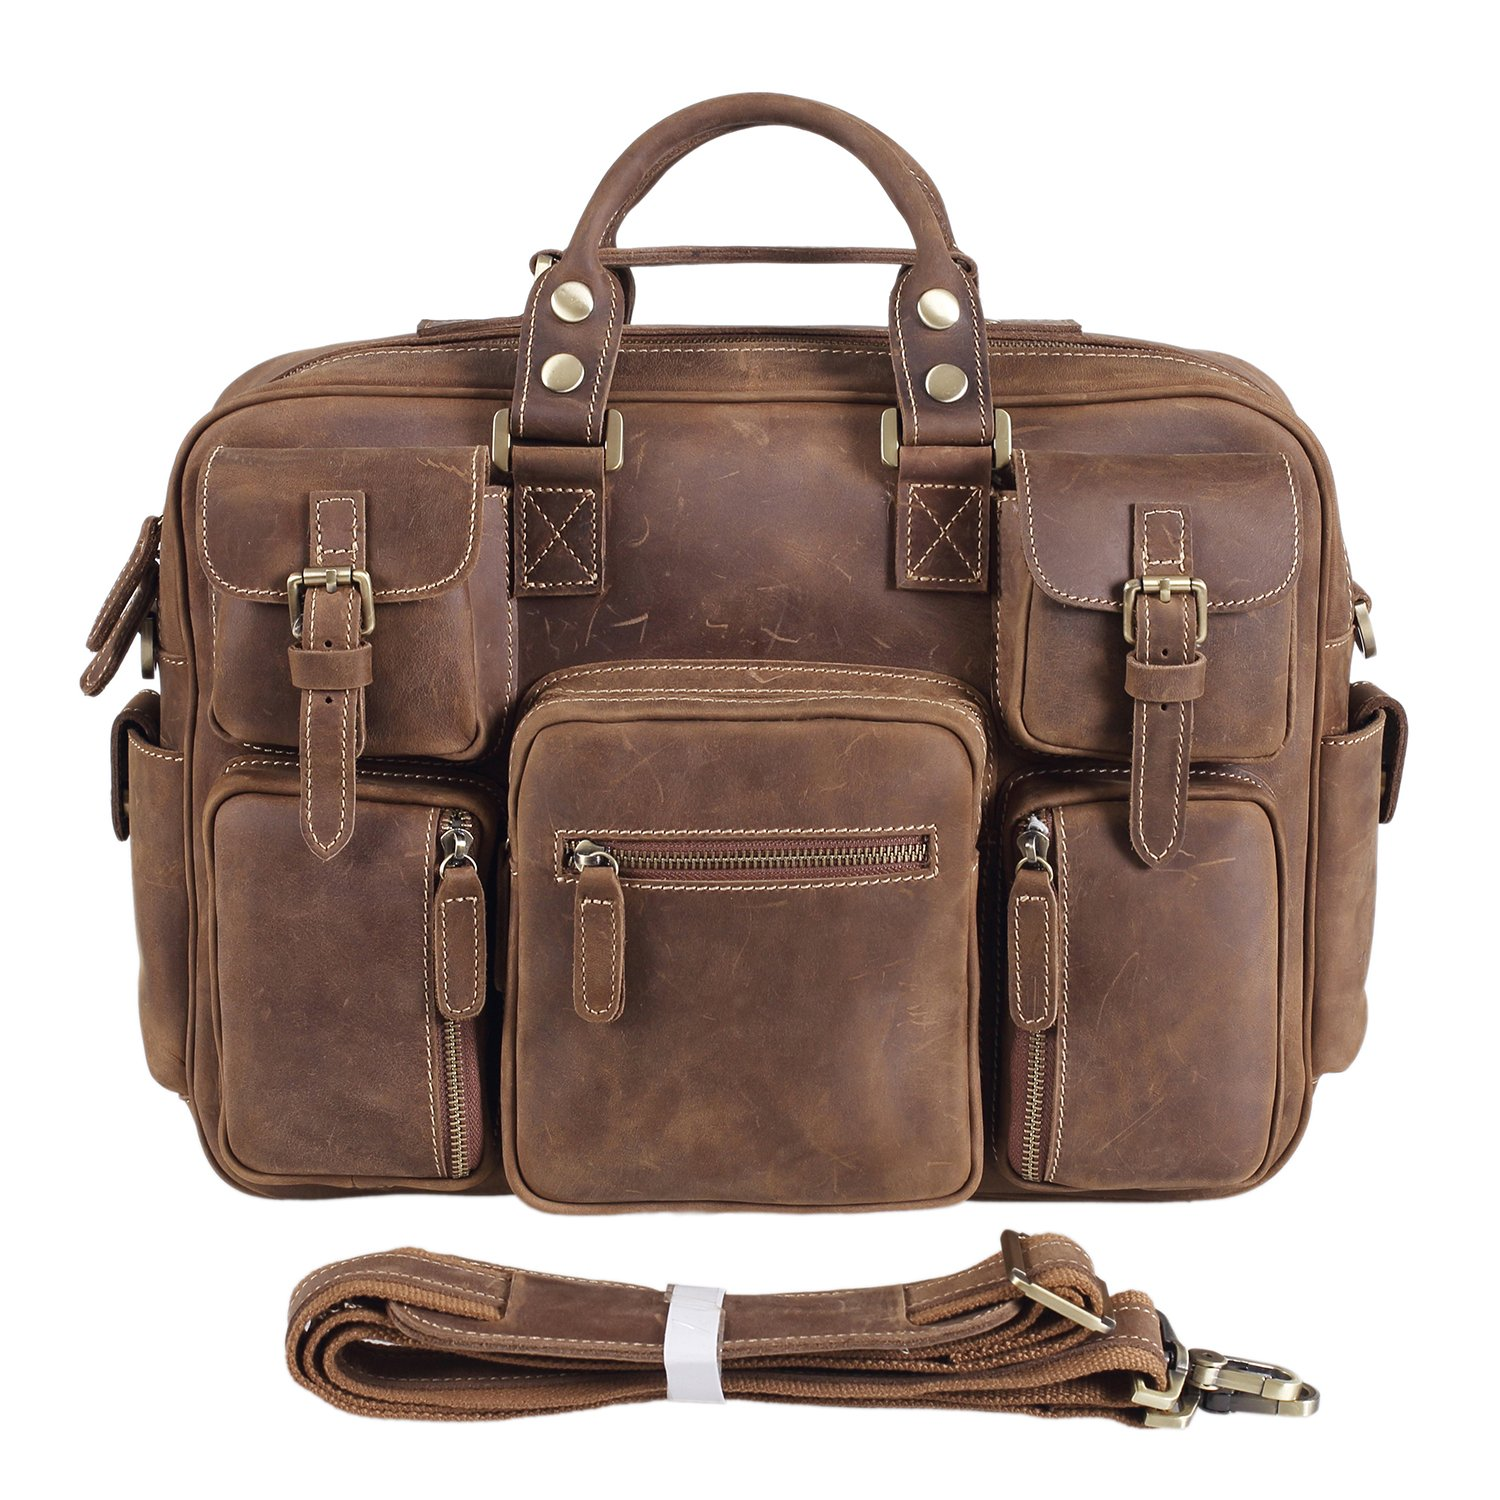 Texbo Vintage Genuine Cowhide Leather Messenger Briefcase Shoulder Bag Tote by Texbo (Image #1)